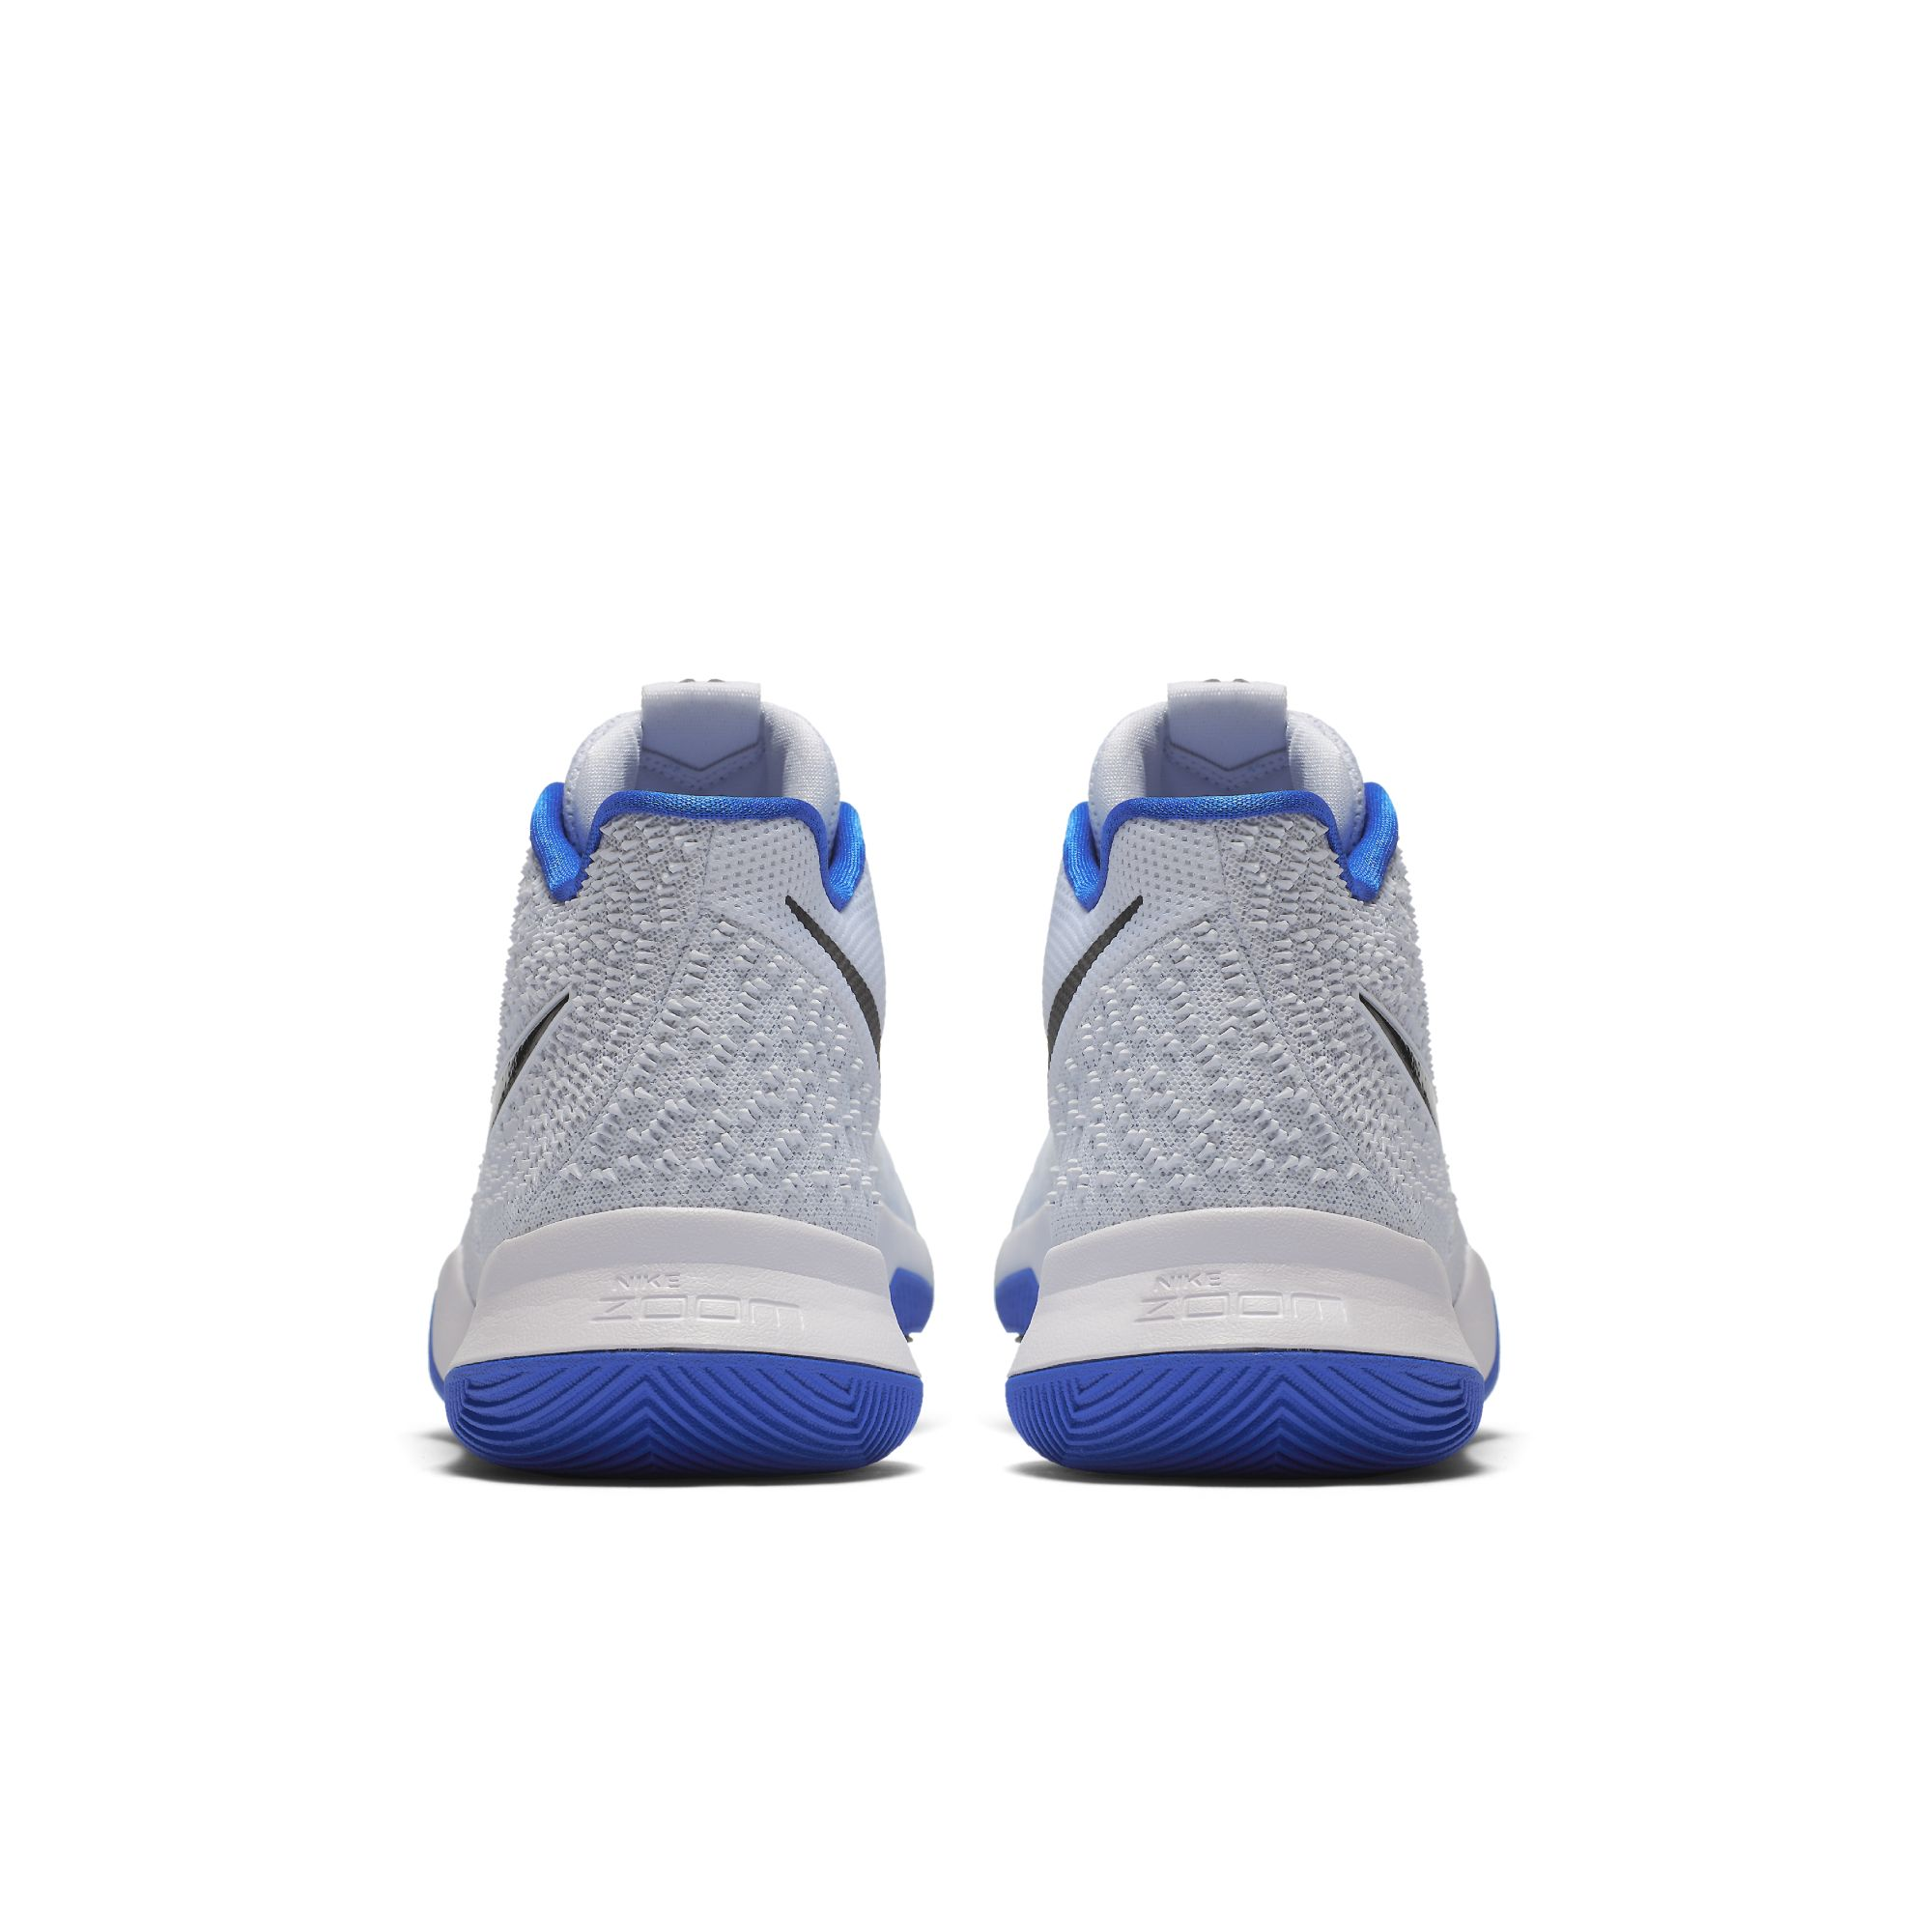 best service 8e305 005d0 good the nike kyrie 3 hyper cobalt welcomes february c55b5 098a8  best if  you like what you see and prefer court feel and traction above all else